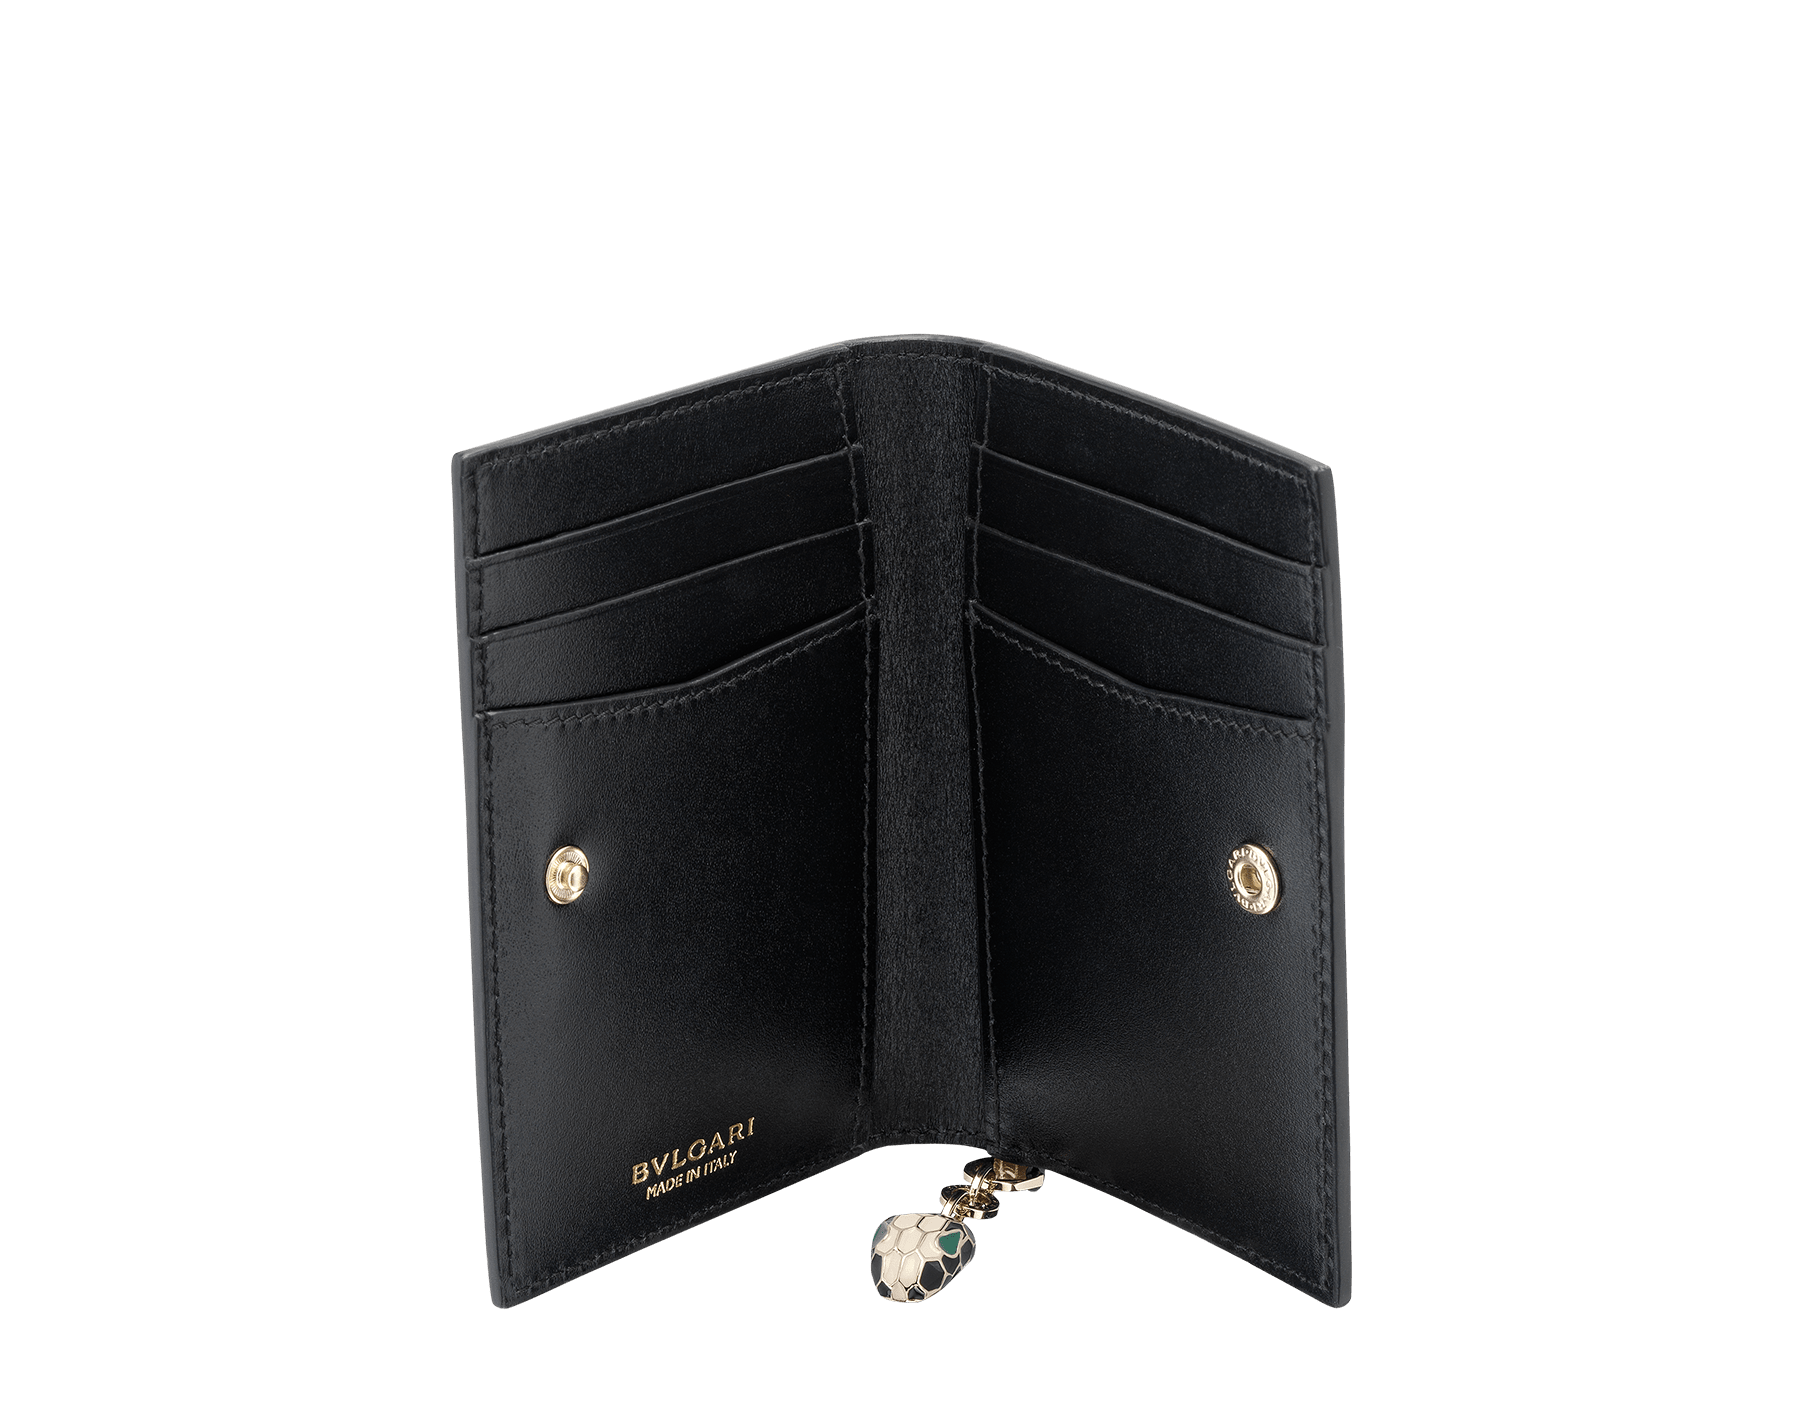 Folded credit card holder in antique bronze calf leather and black calf leather, with brass light gold plated hardware and stud closure. Serpenti head charm in black and white enamel with malachite enamel eyes. 282033 image 2